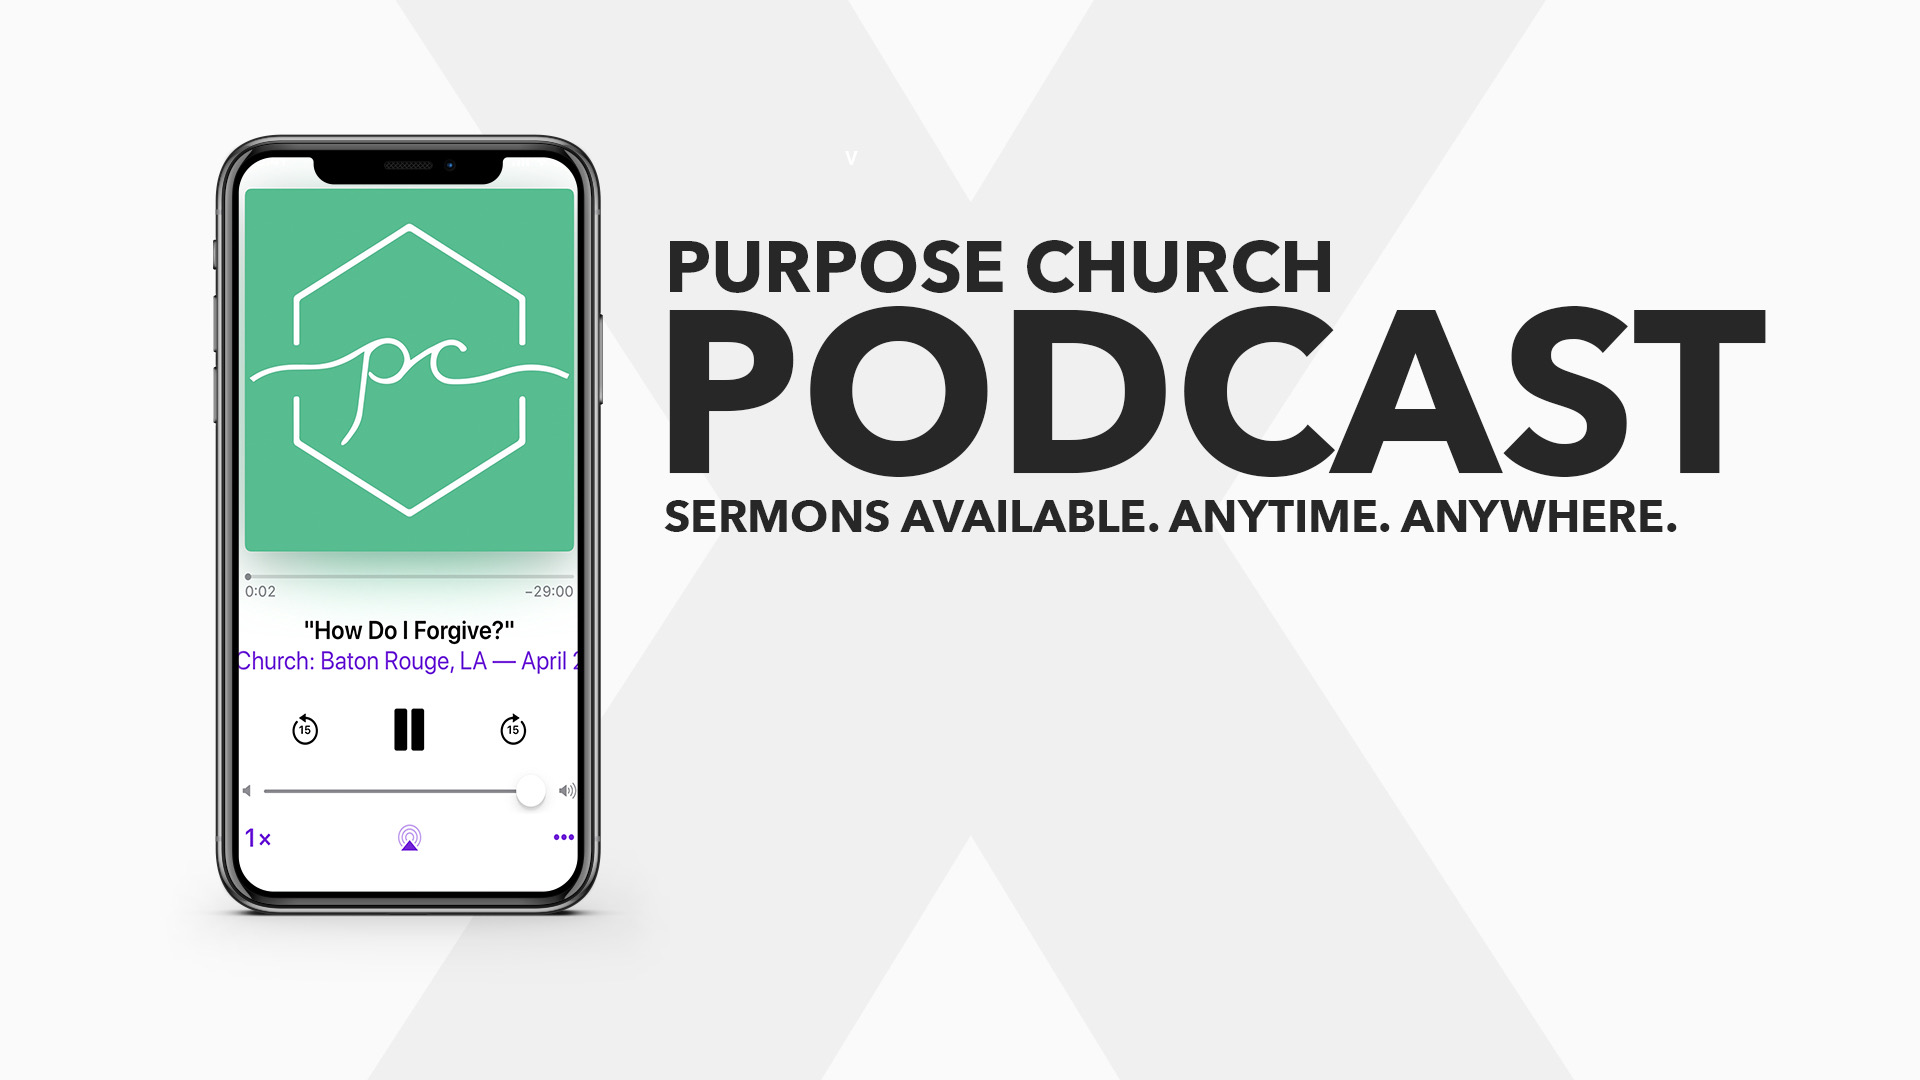 NEVER MISS SERVICE - SUBSCRIBE TO THE PURPOSE CHURCH PODCAST